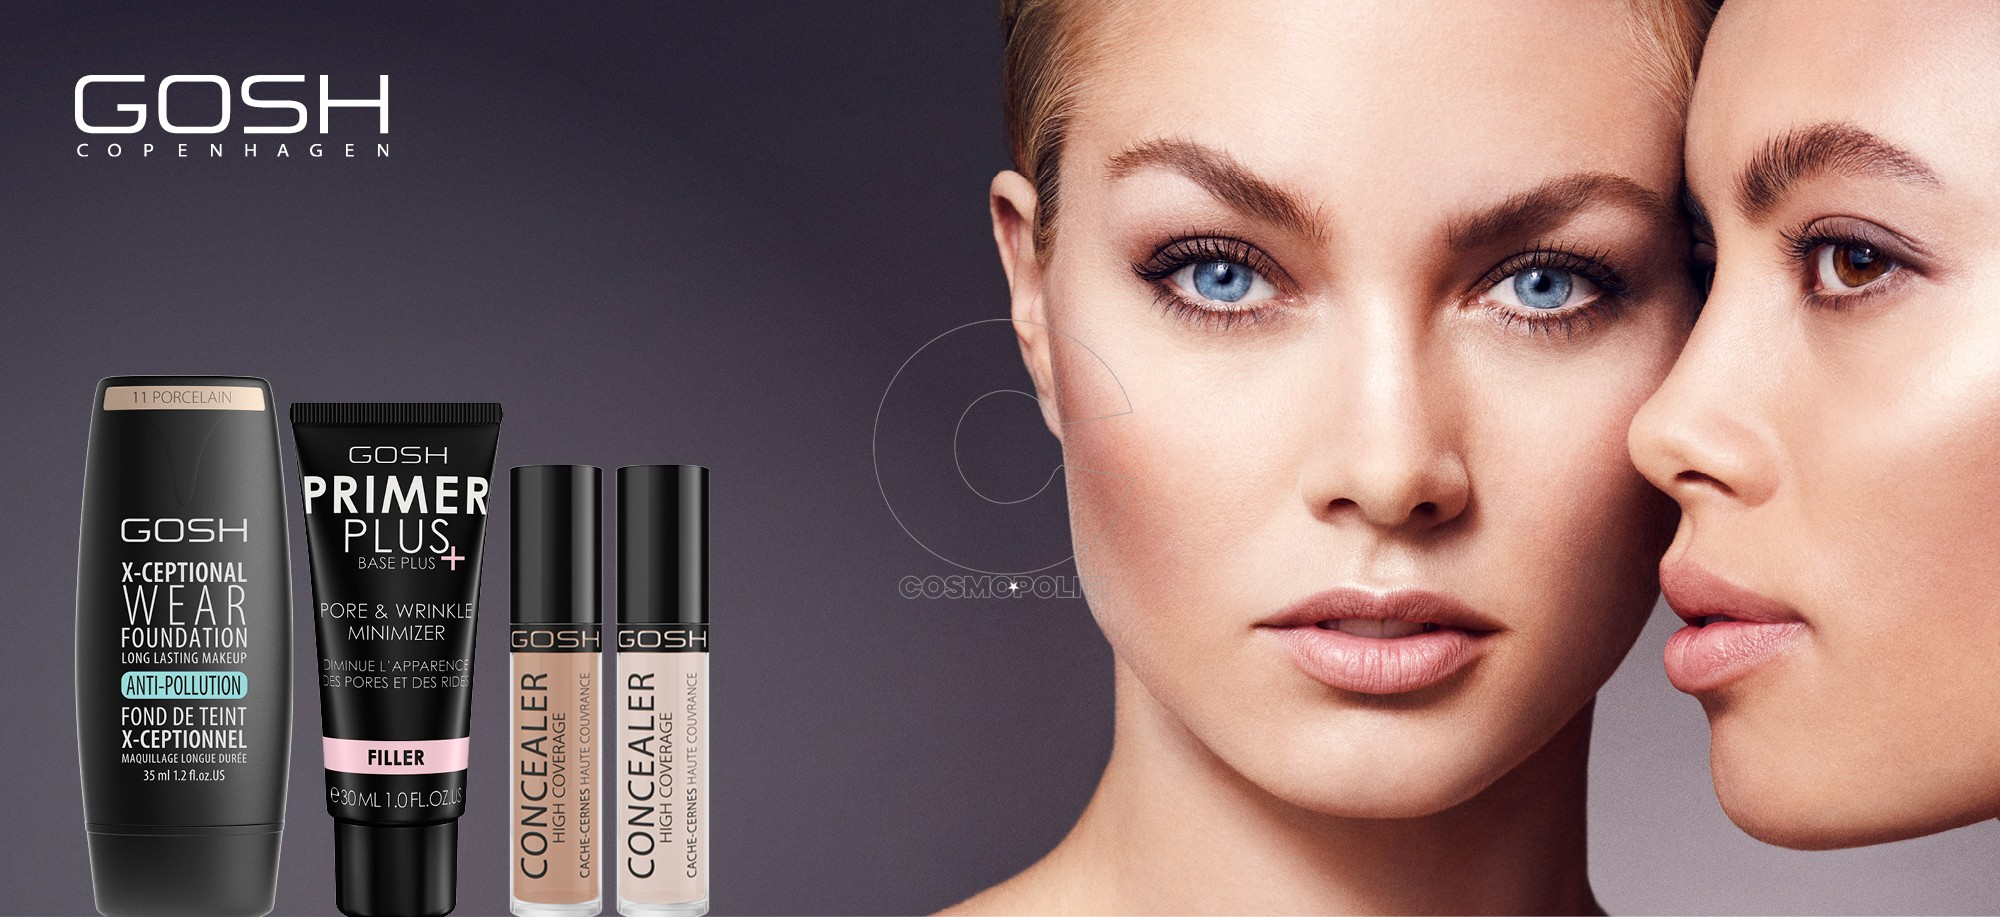 GOSH _CAMPAIGN NORDIC_LIGHT_Primed_Concealed_Xcep_Face